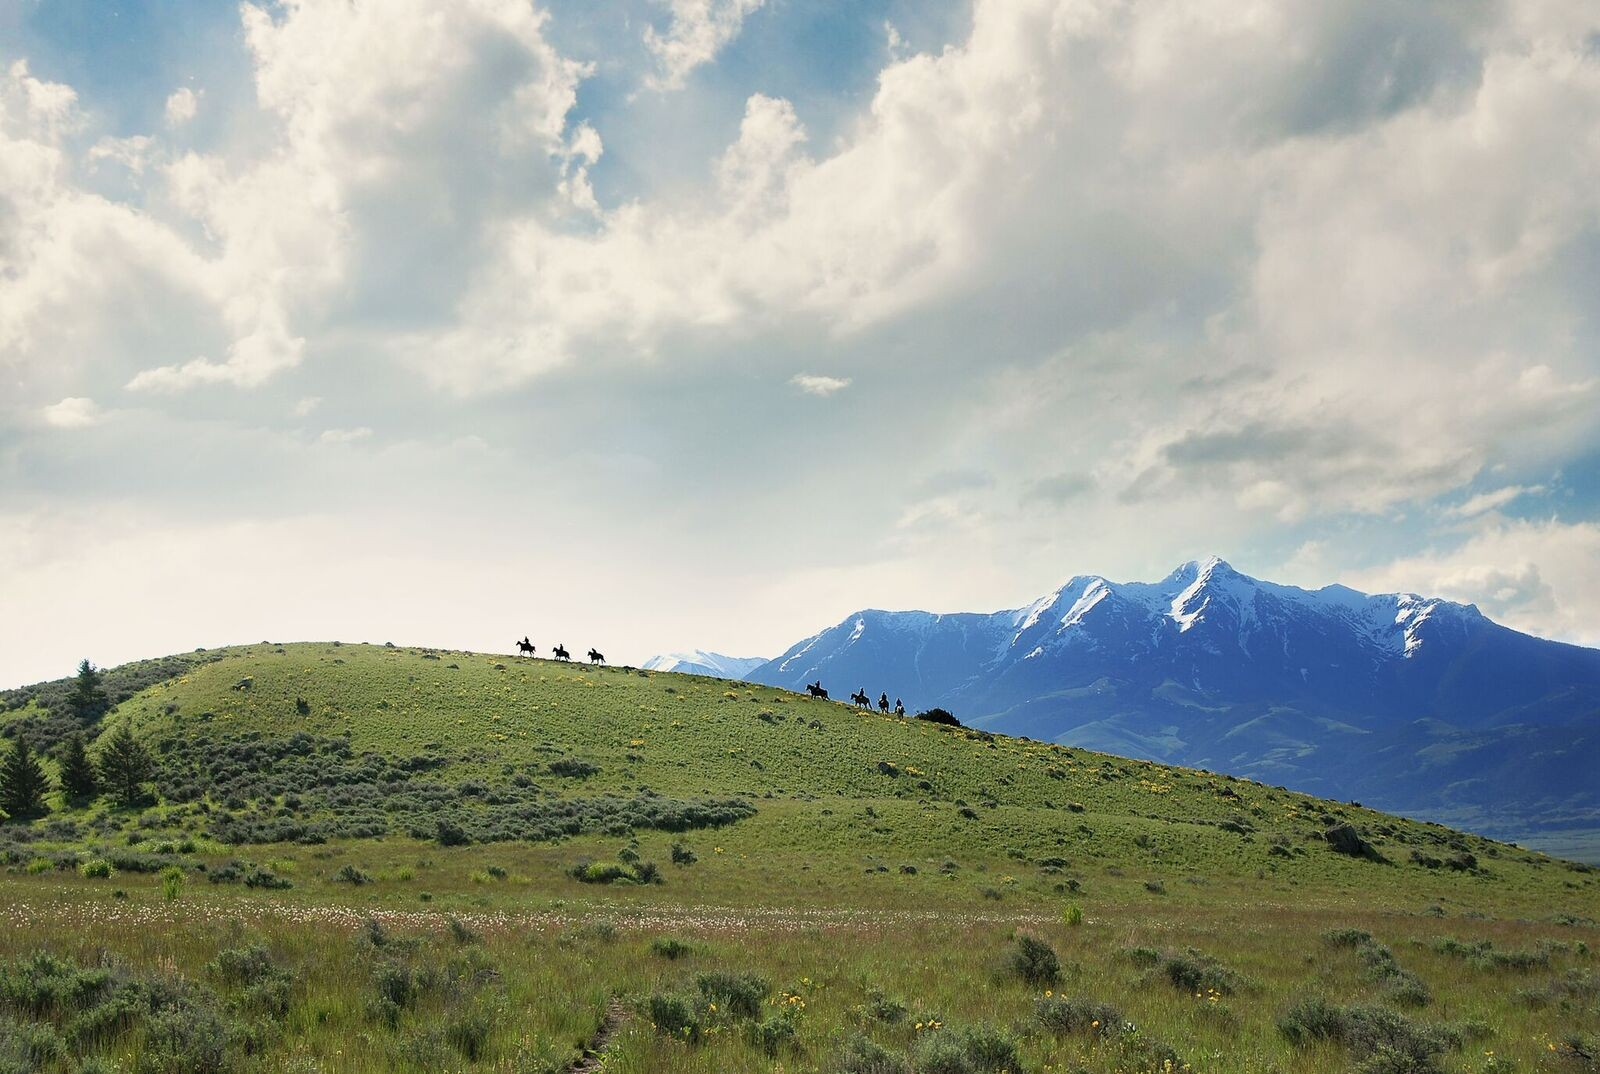 Wanted - Full-time Ranch Hand for Hay/Cattle Ranch - Montana